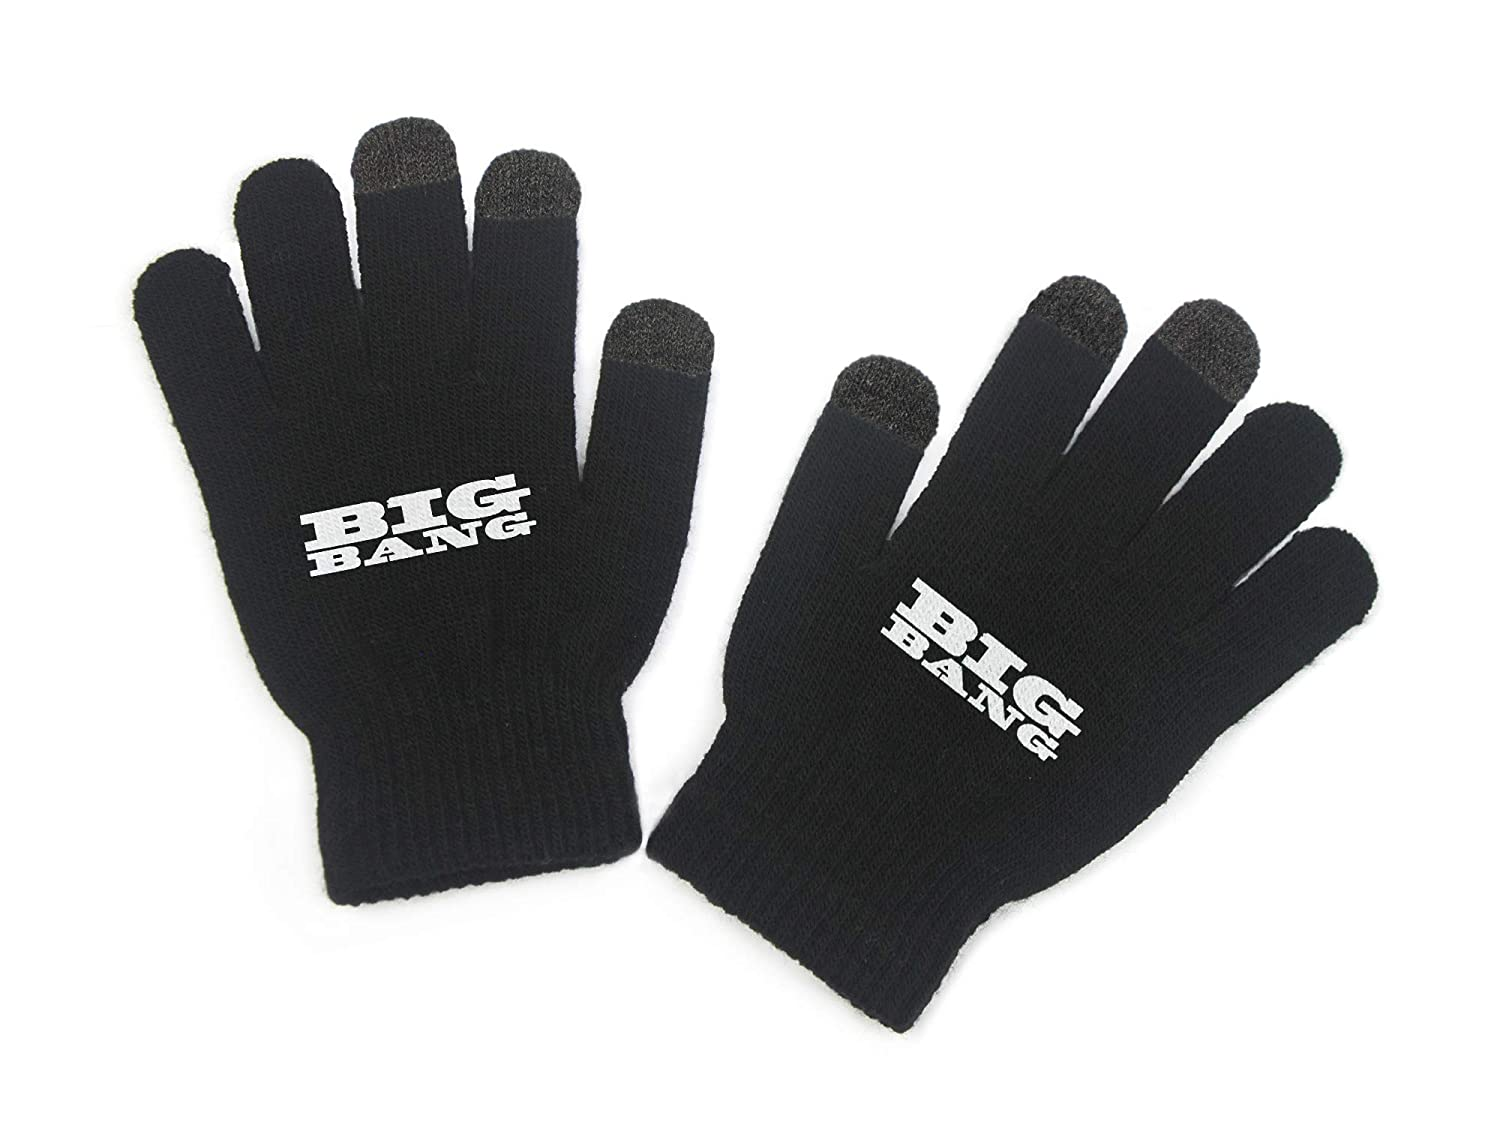 Fanstown KPOP Glove Finger Screen Touchable Design with lomo card